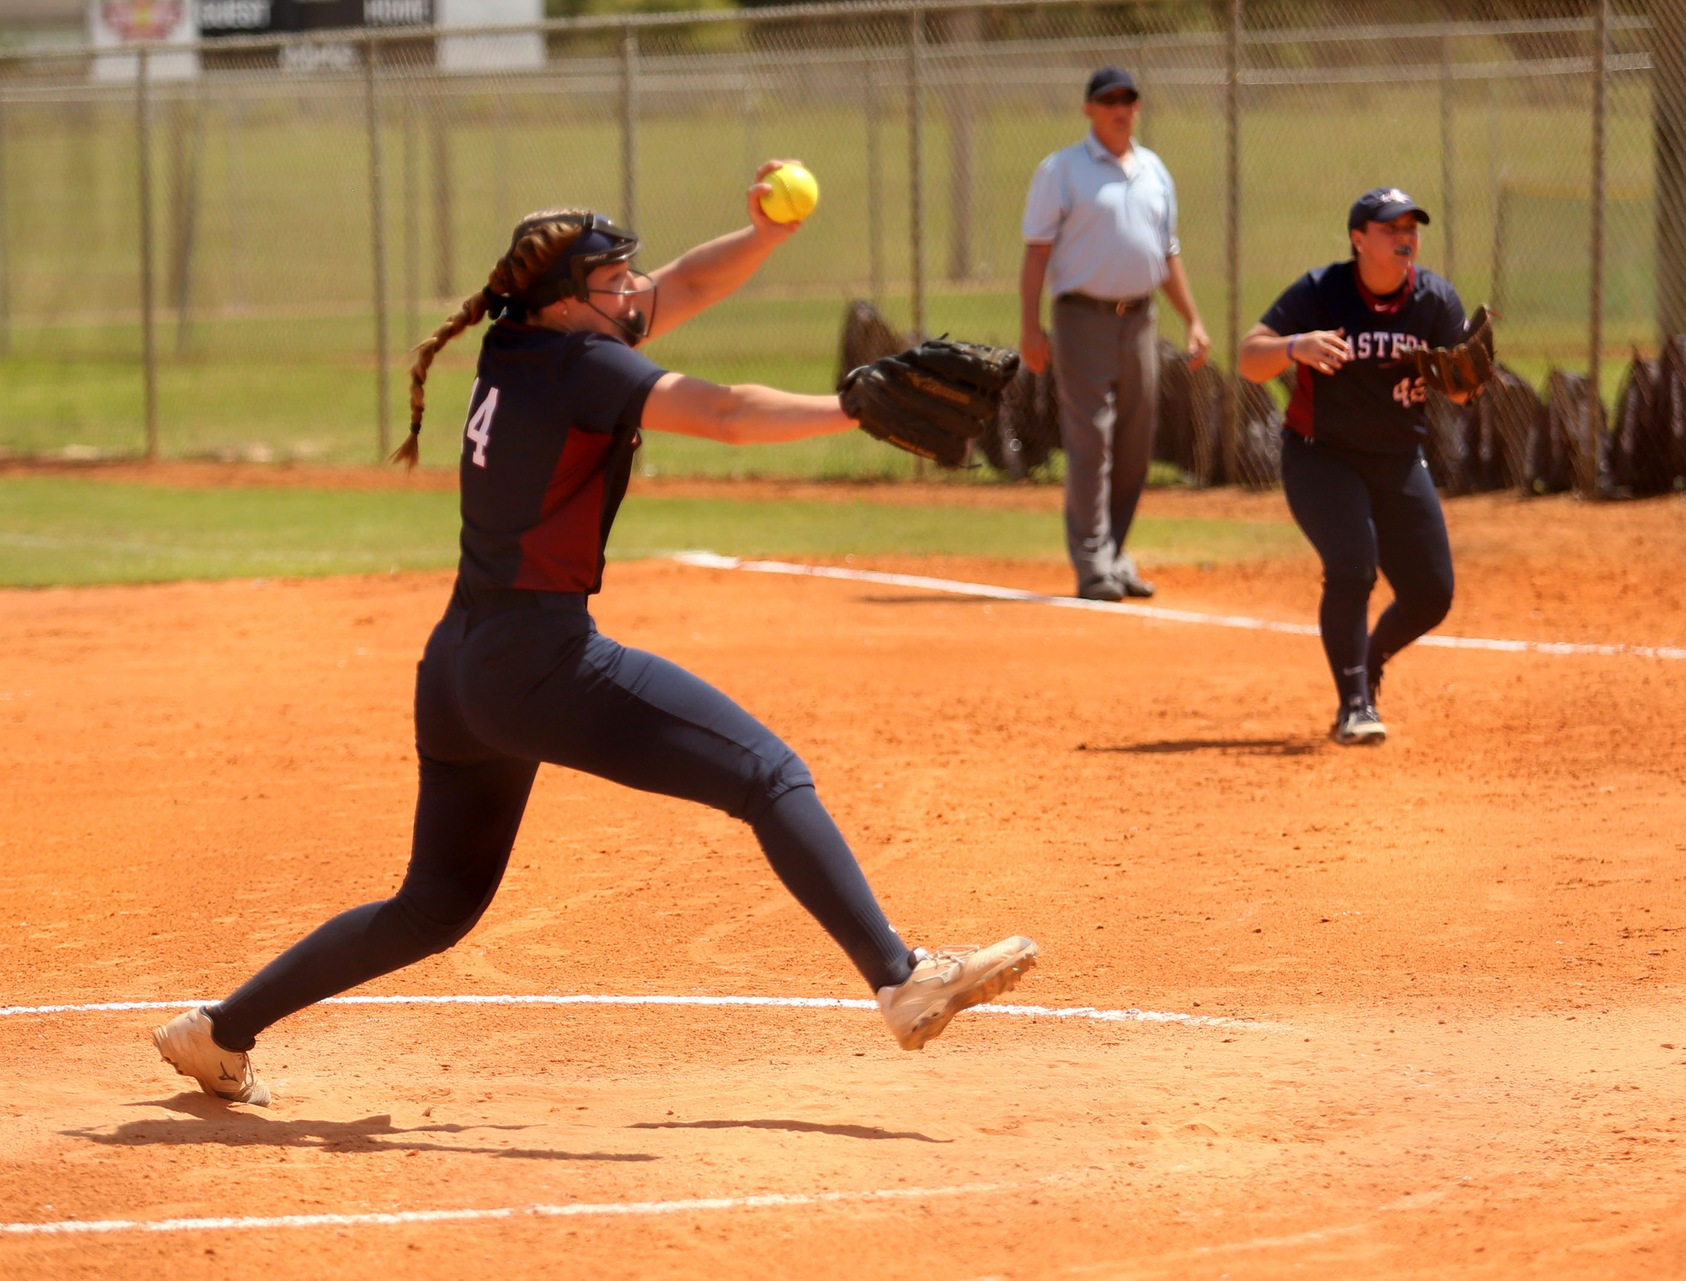 In her first pitching appearance in nearly a month, Morgan Sanson (above) gave the Warriors a chance to win by allowing only one run on one hit over the final  4 2/3 innings. She also drove in a run and scored in the Warriors' three-run seventh inning.